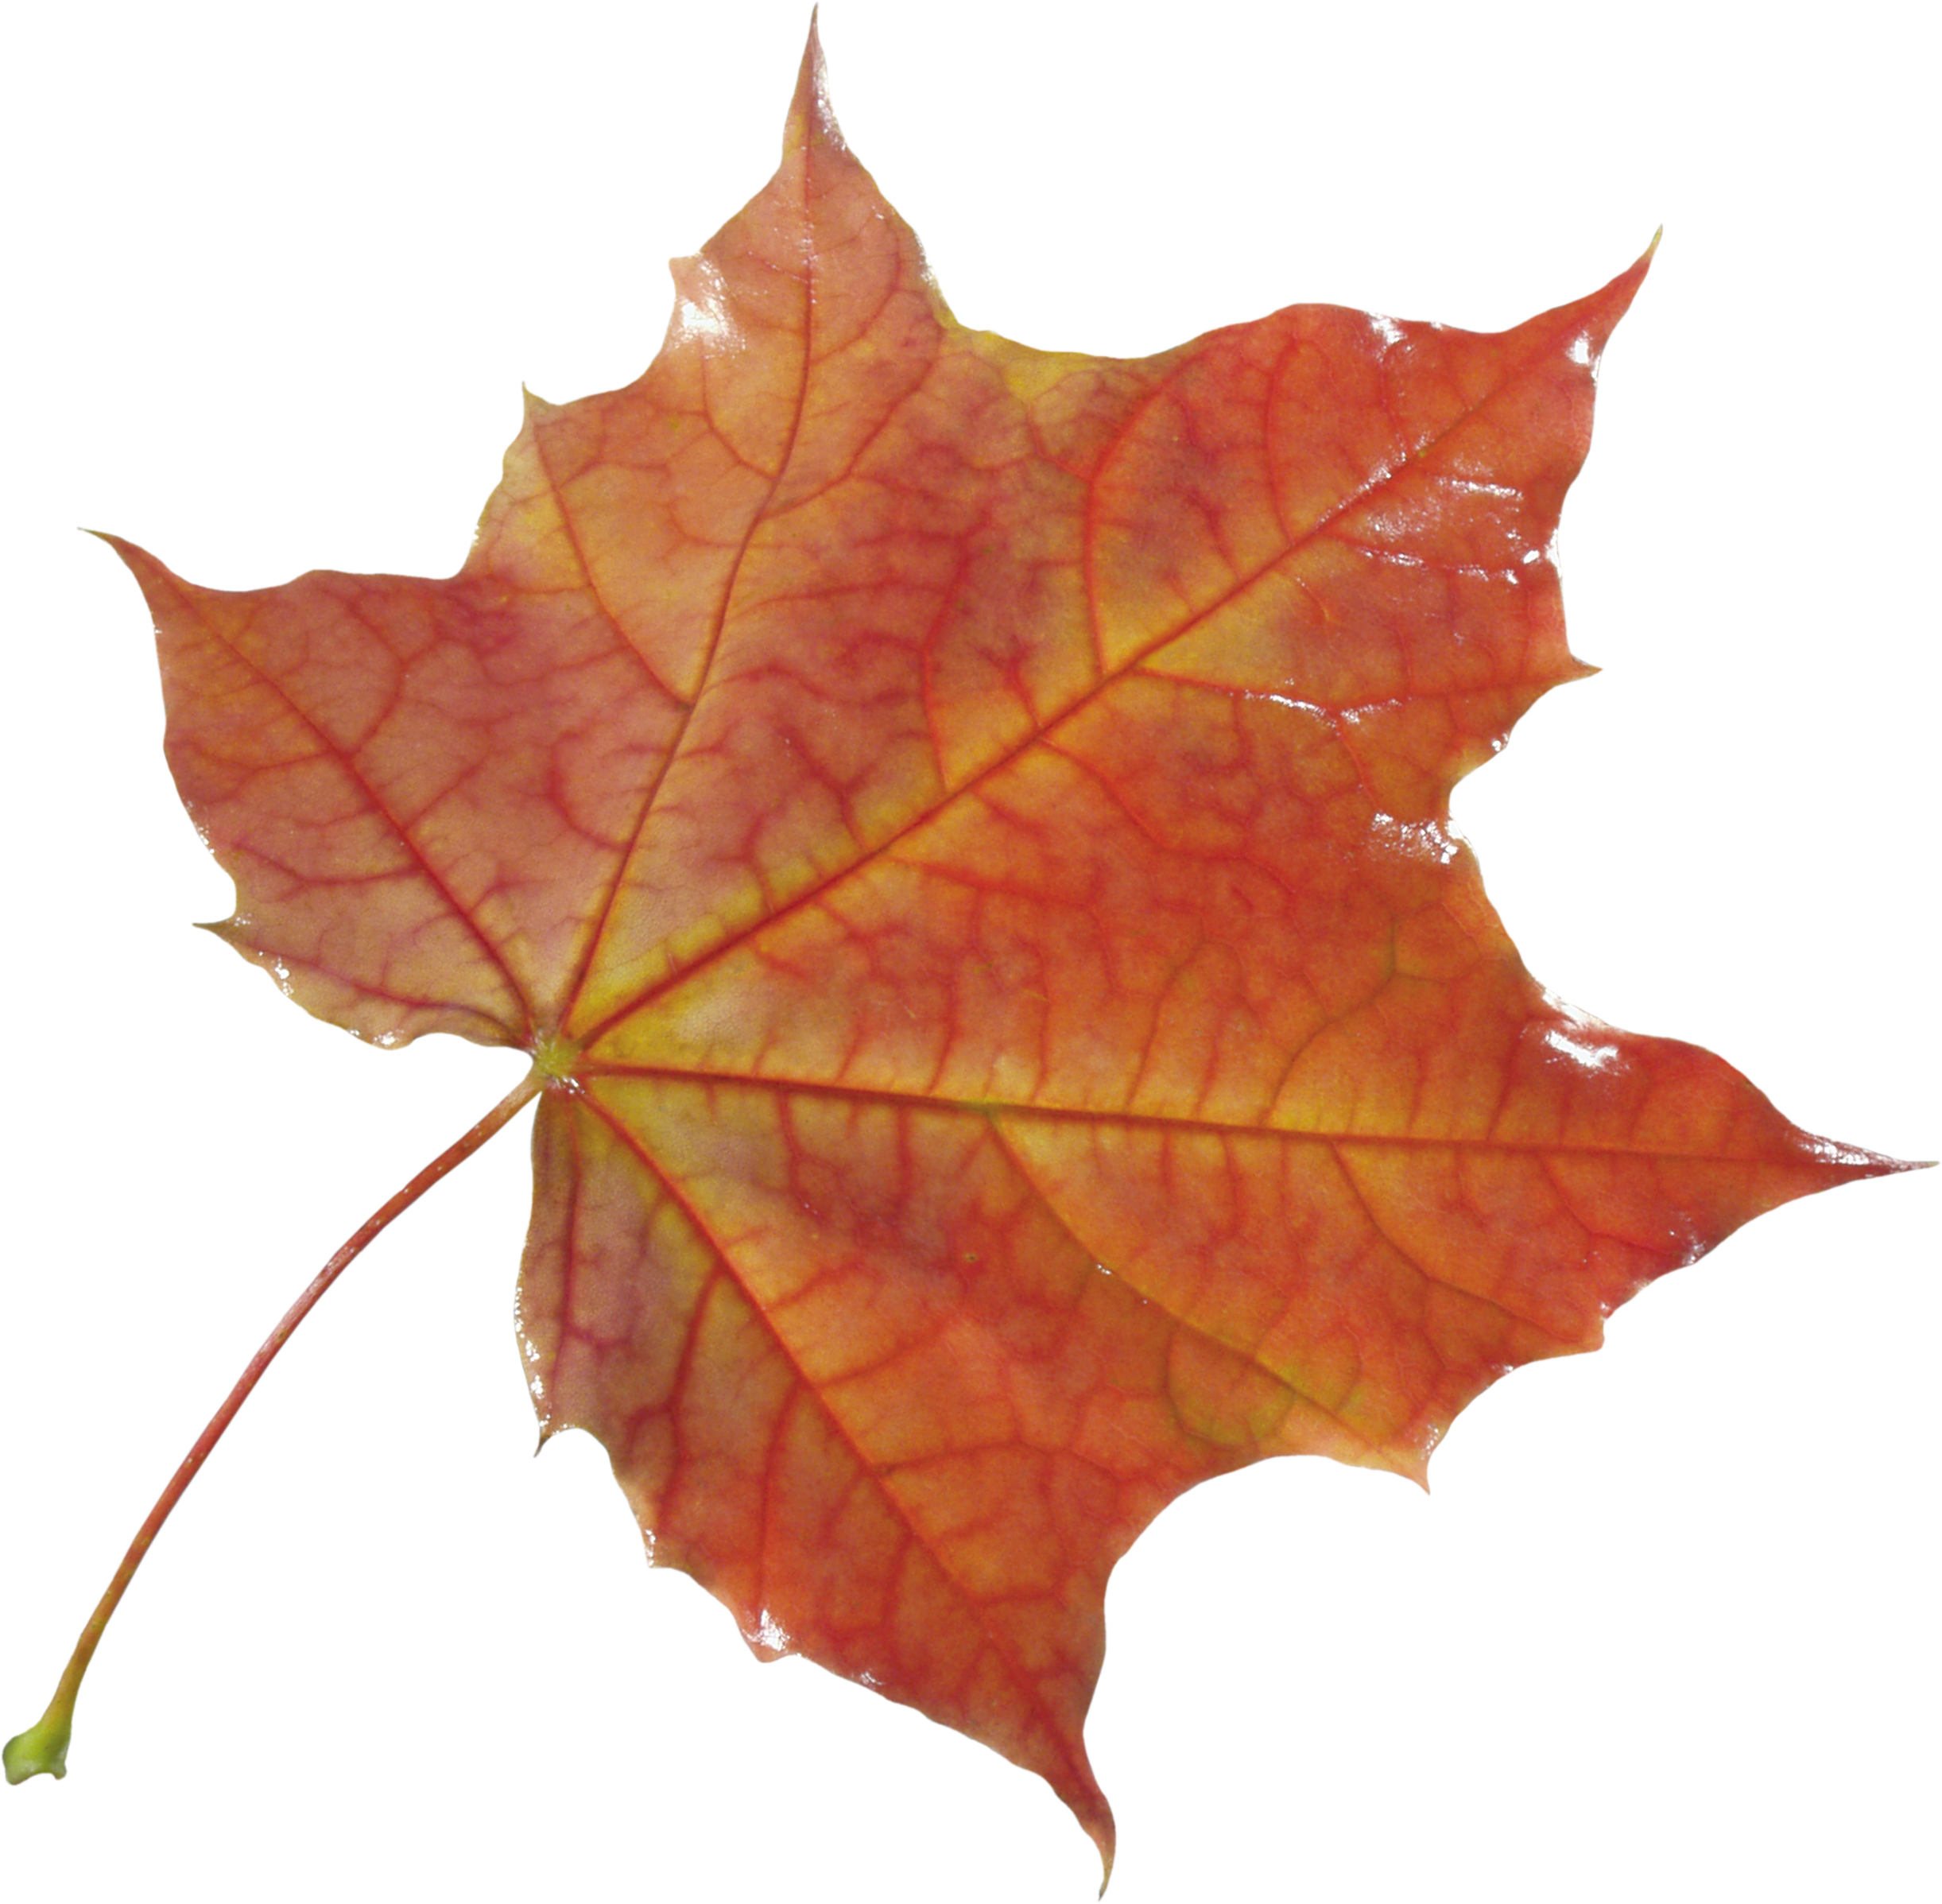 Autumn Leaf PNG Image - PurePNG | Free transparent CC0 PNG Image Library